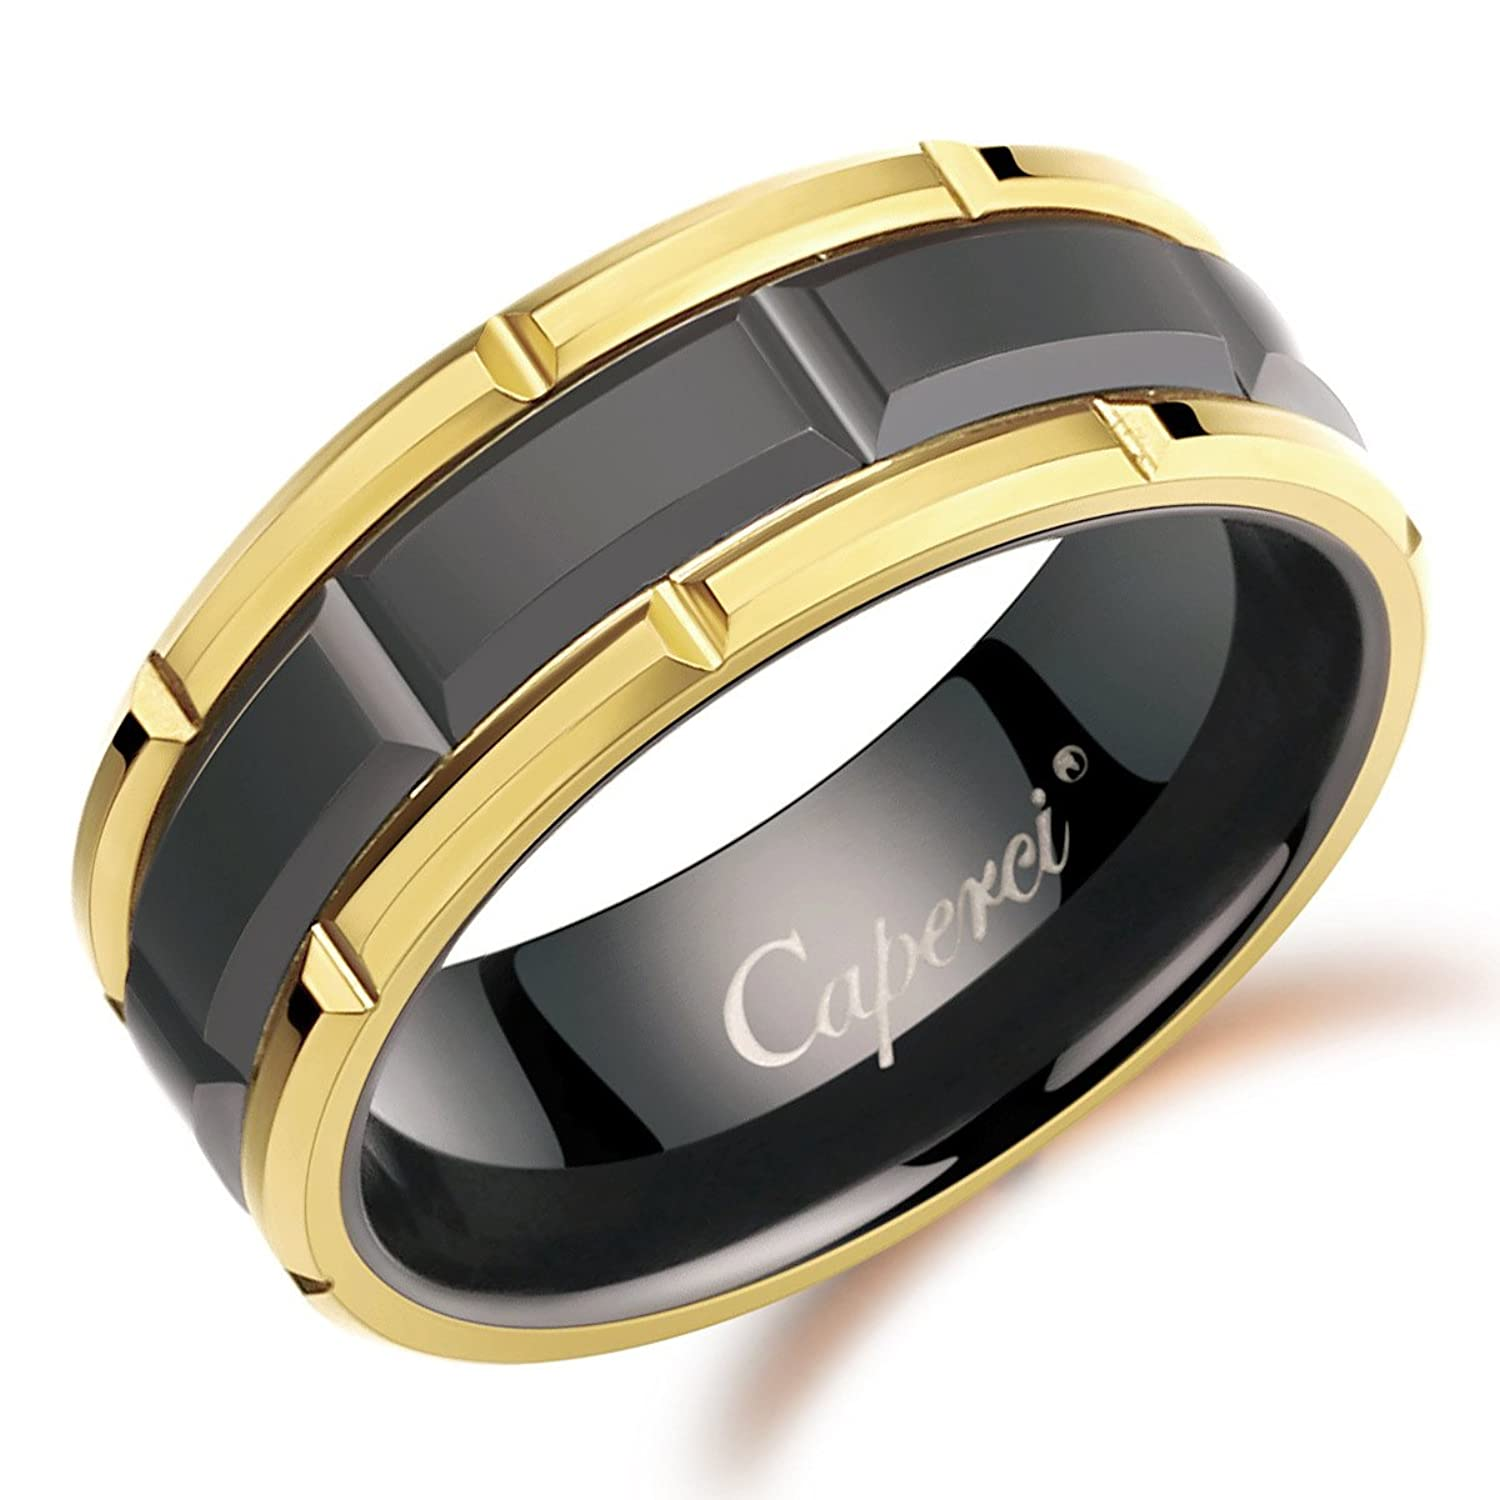 caperci men s yellow gold and black brick pattern 8mm tungsten